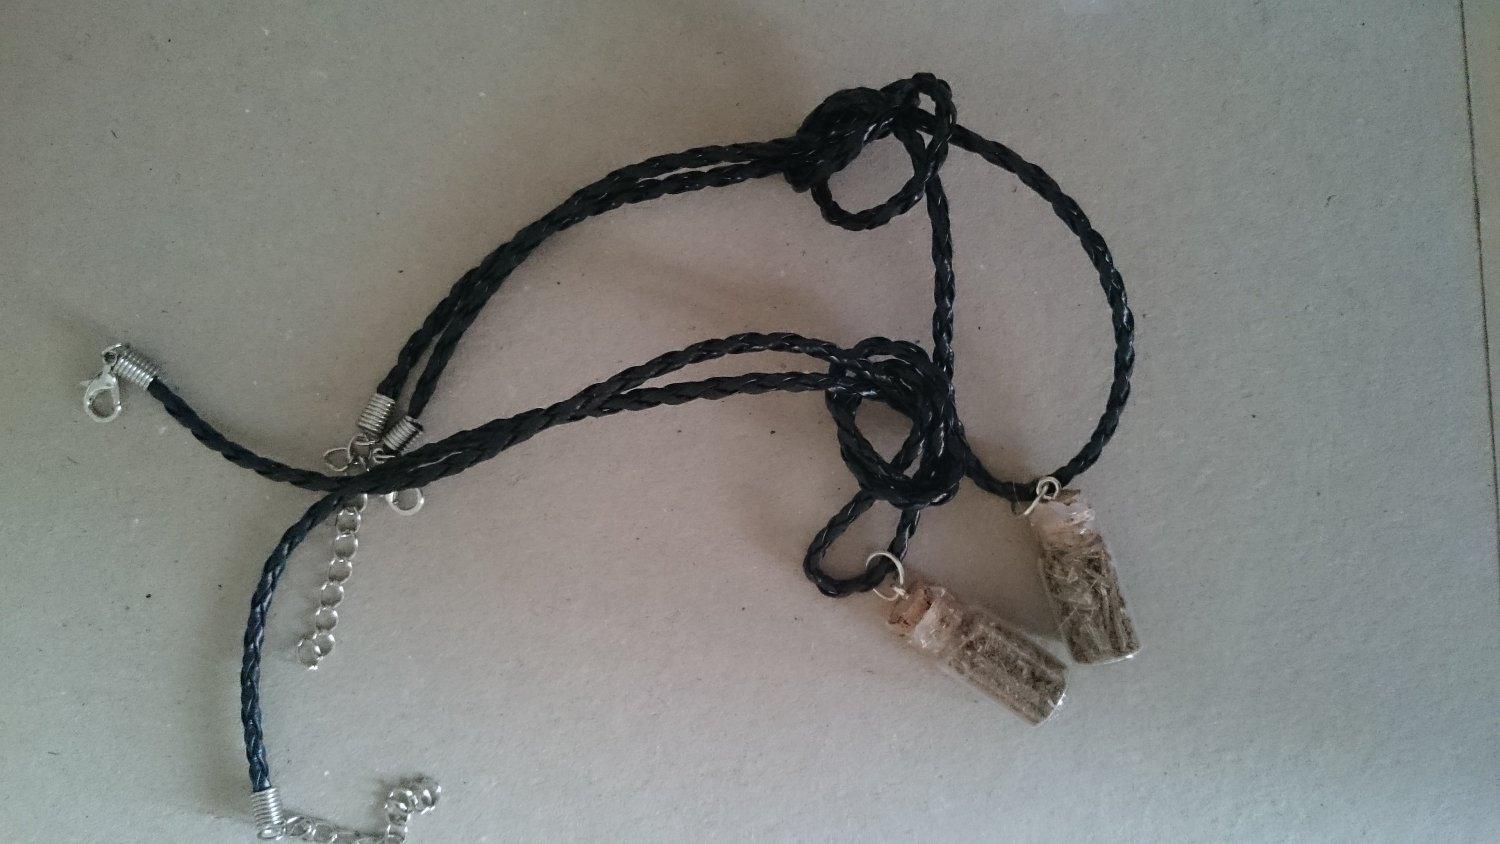 Witches Spell Bottle Pendant for Protection   Wicca   Witchcraft   Pagan   Occult   Spells   Magick